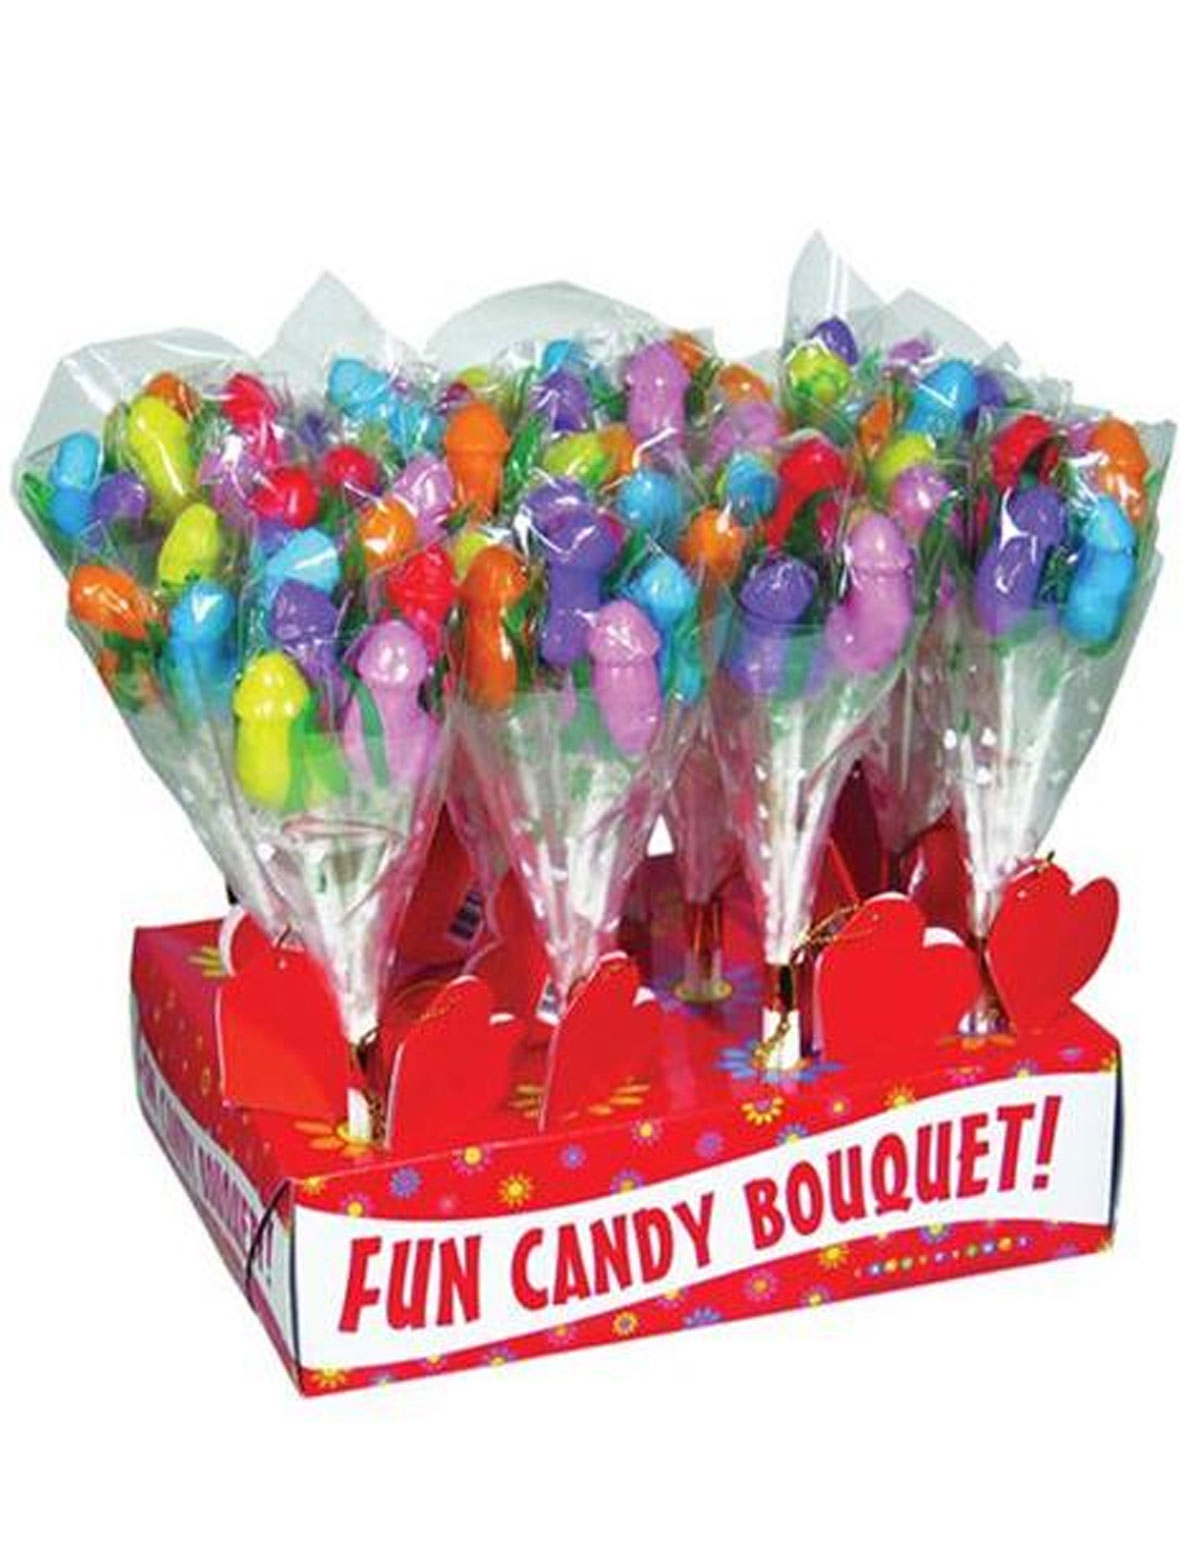 Penis Candy Bouquet